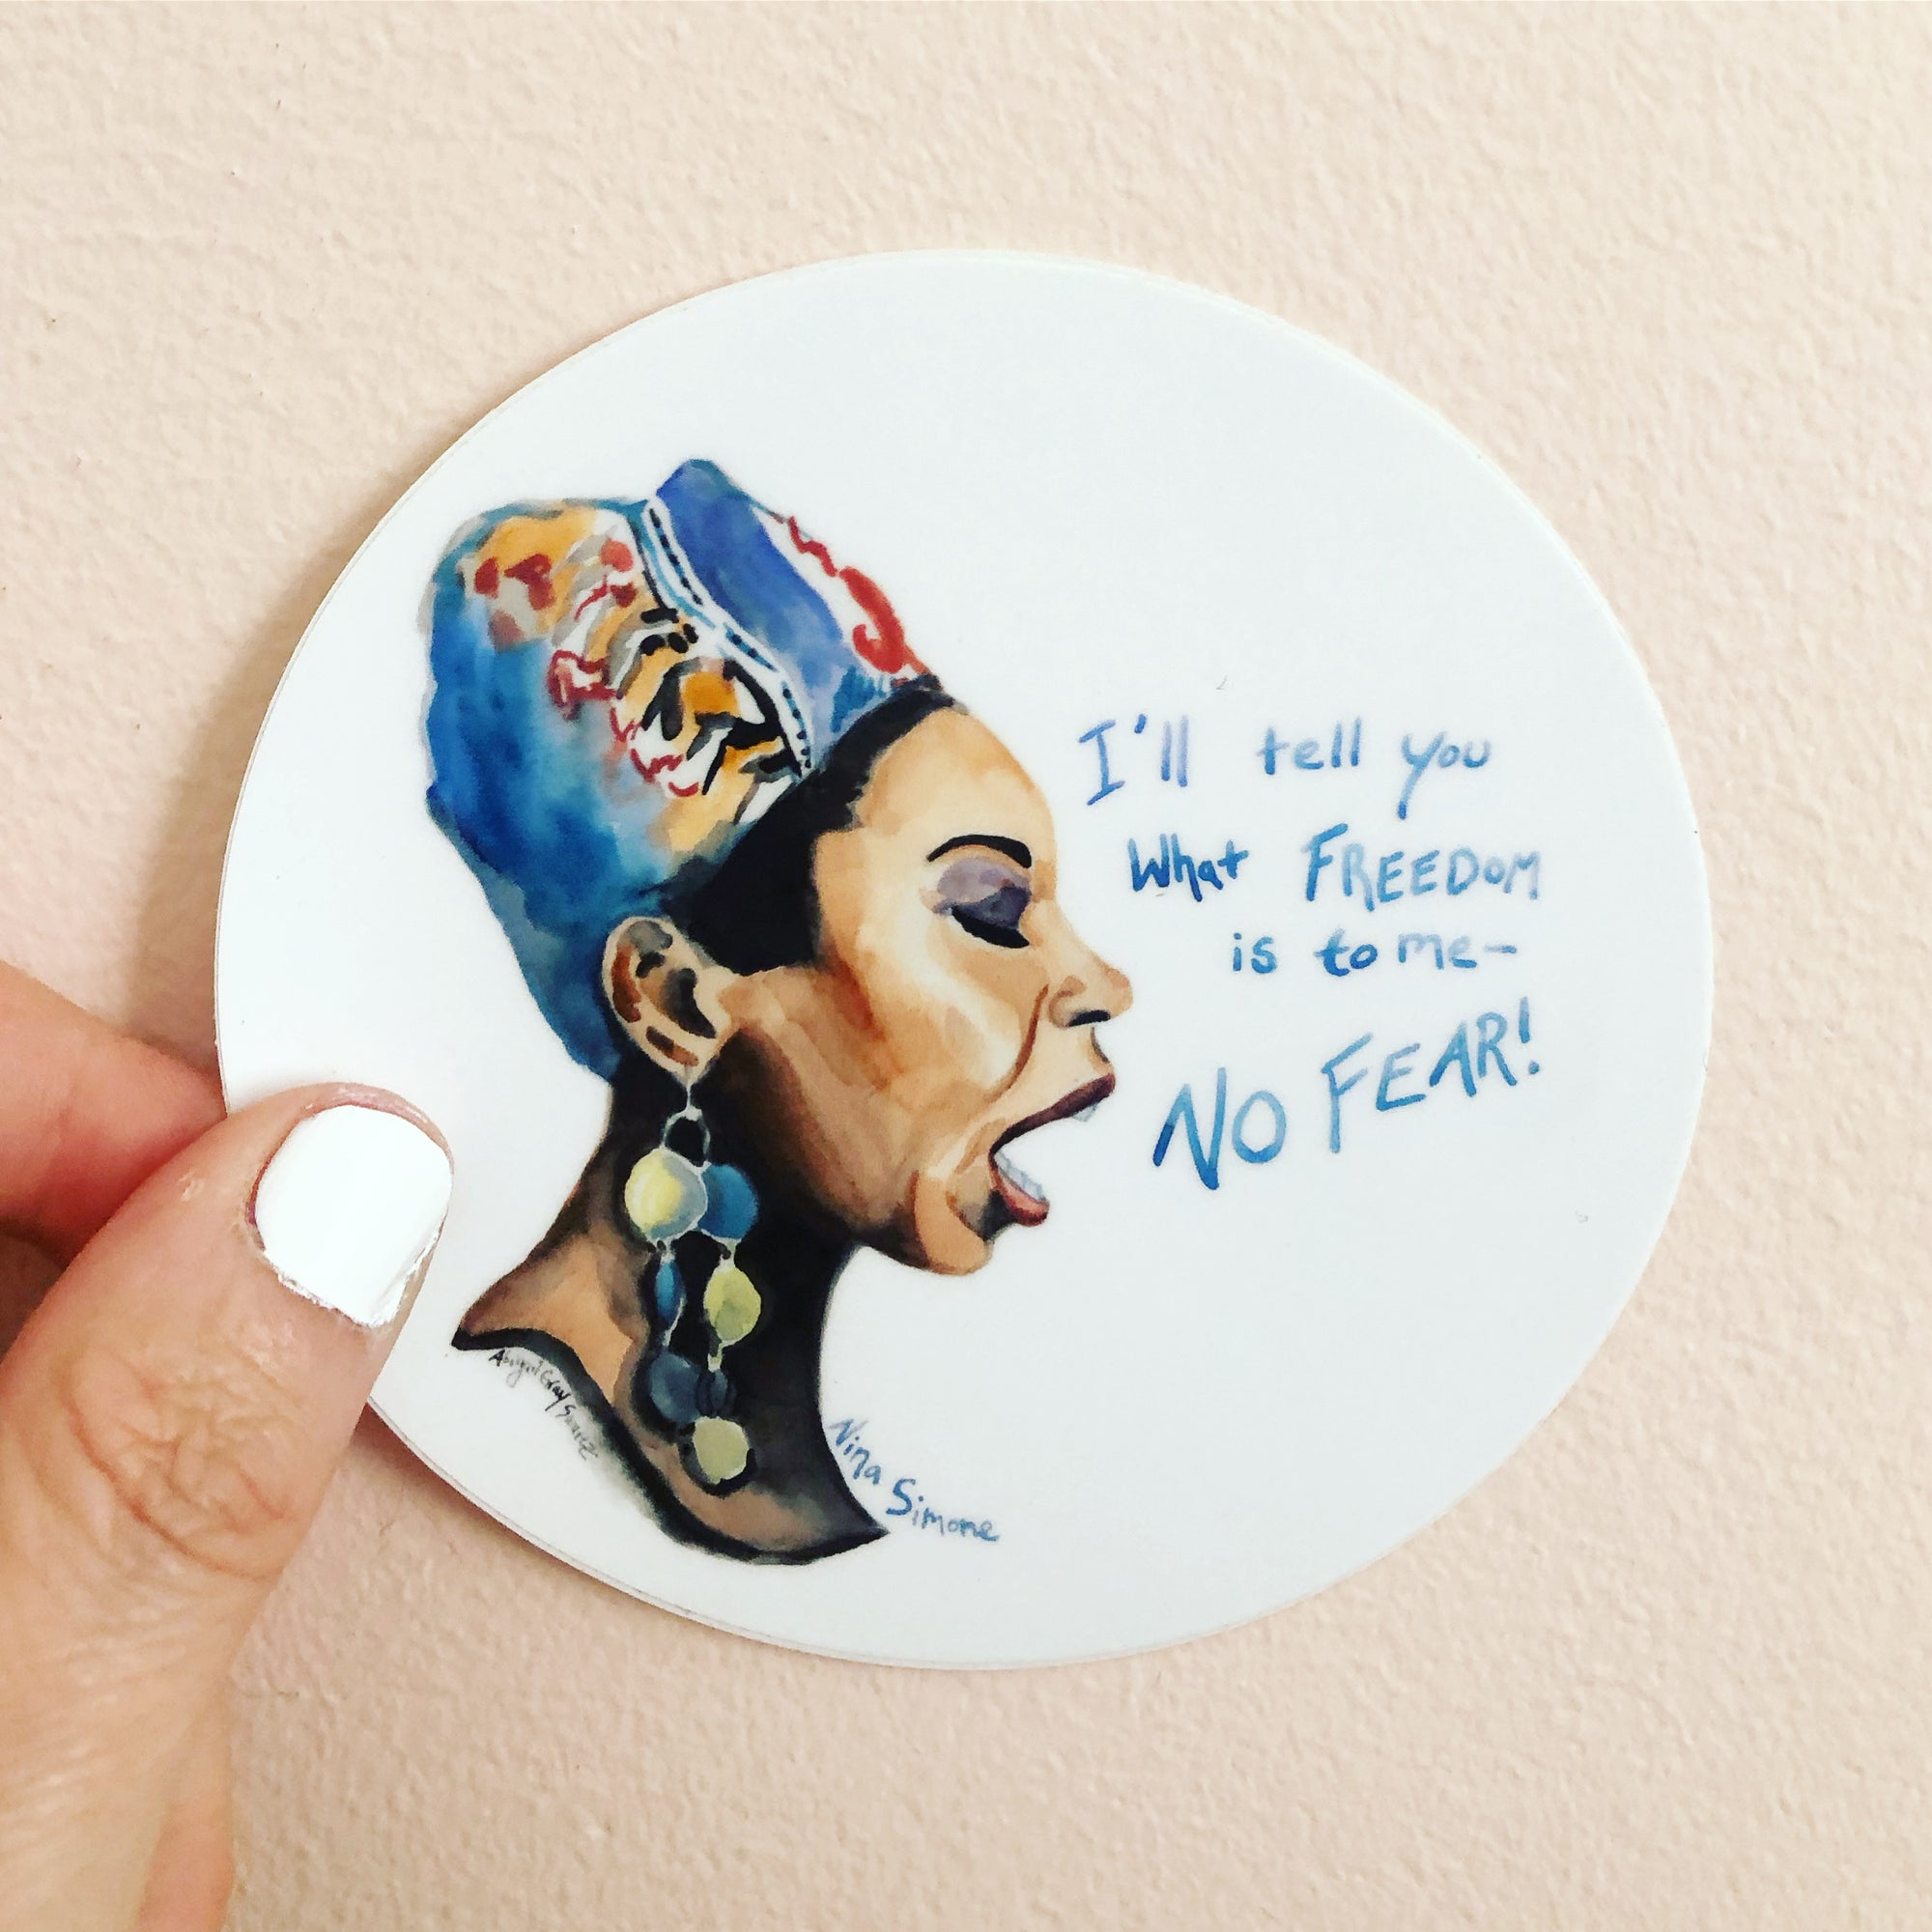 "Nina Simone portrait sticker, and inspiring quote ""I'll tell you what Freedoms is to me- NO Fear!"" by Abigail Gray Swartz"